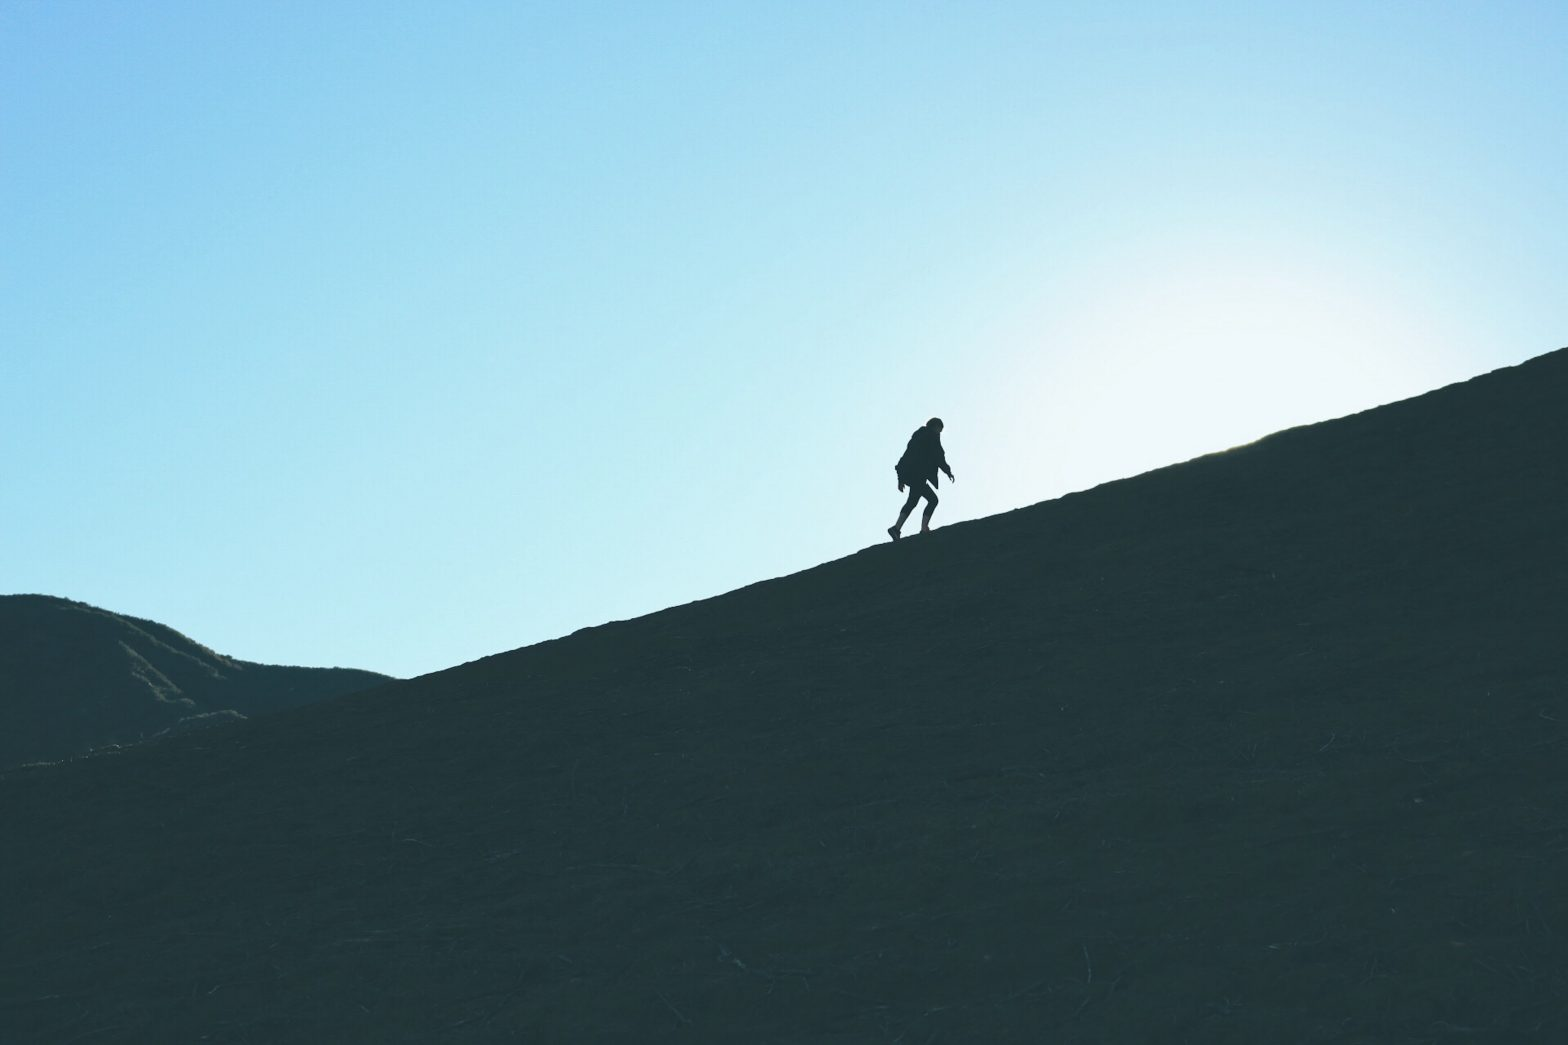 Silhouette of a man climbing a mountain